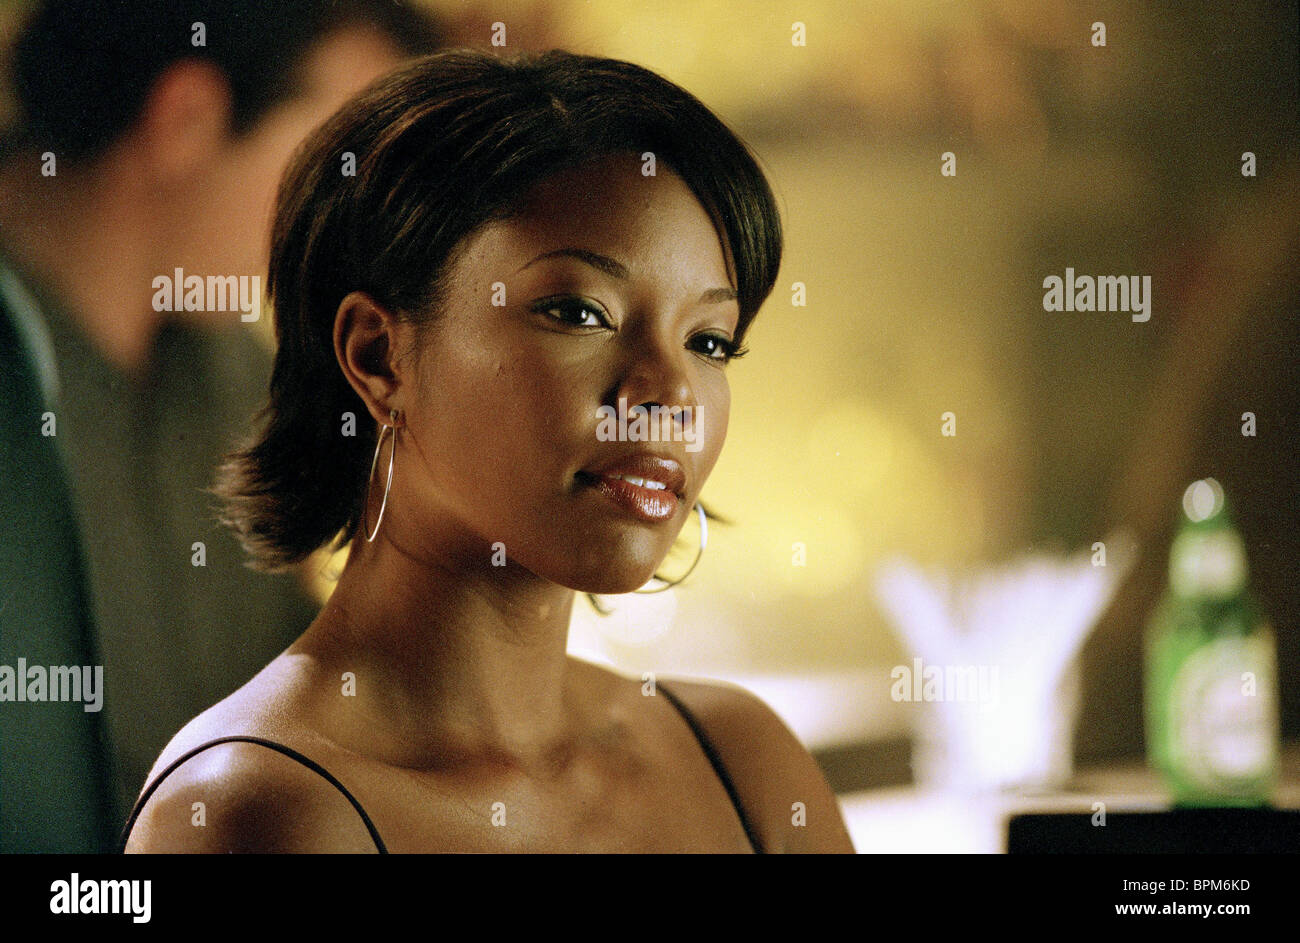 gabrielle union breakin all the rules 2004 stock photo 31177089